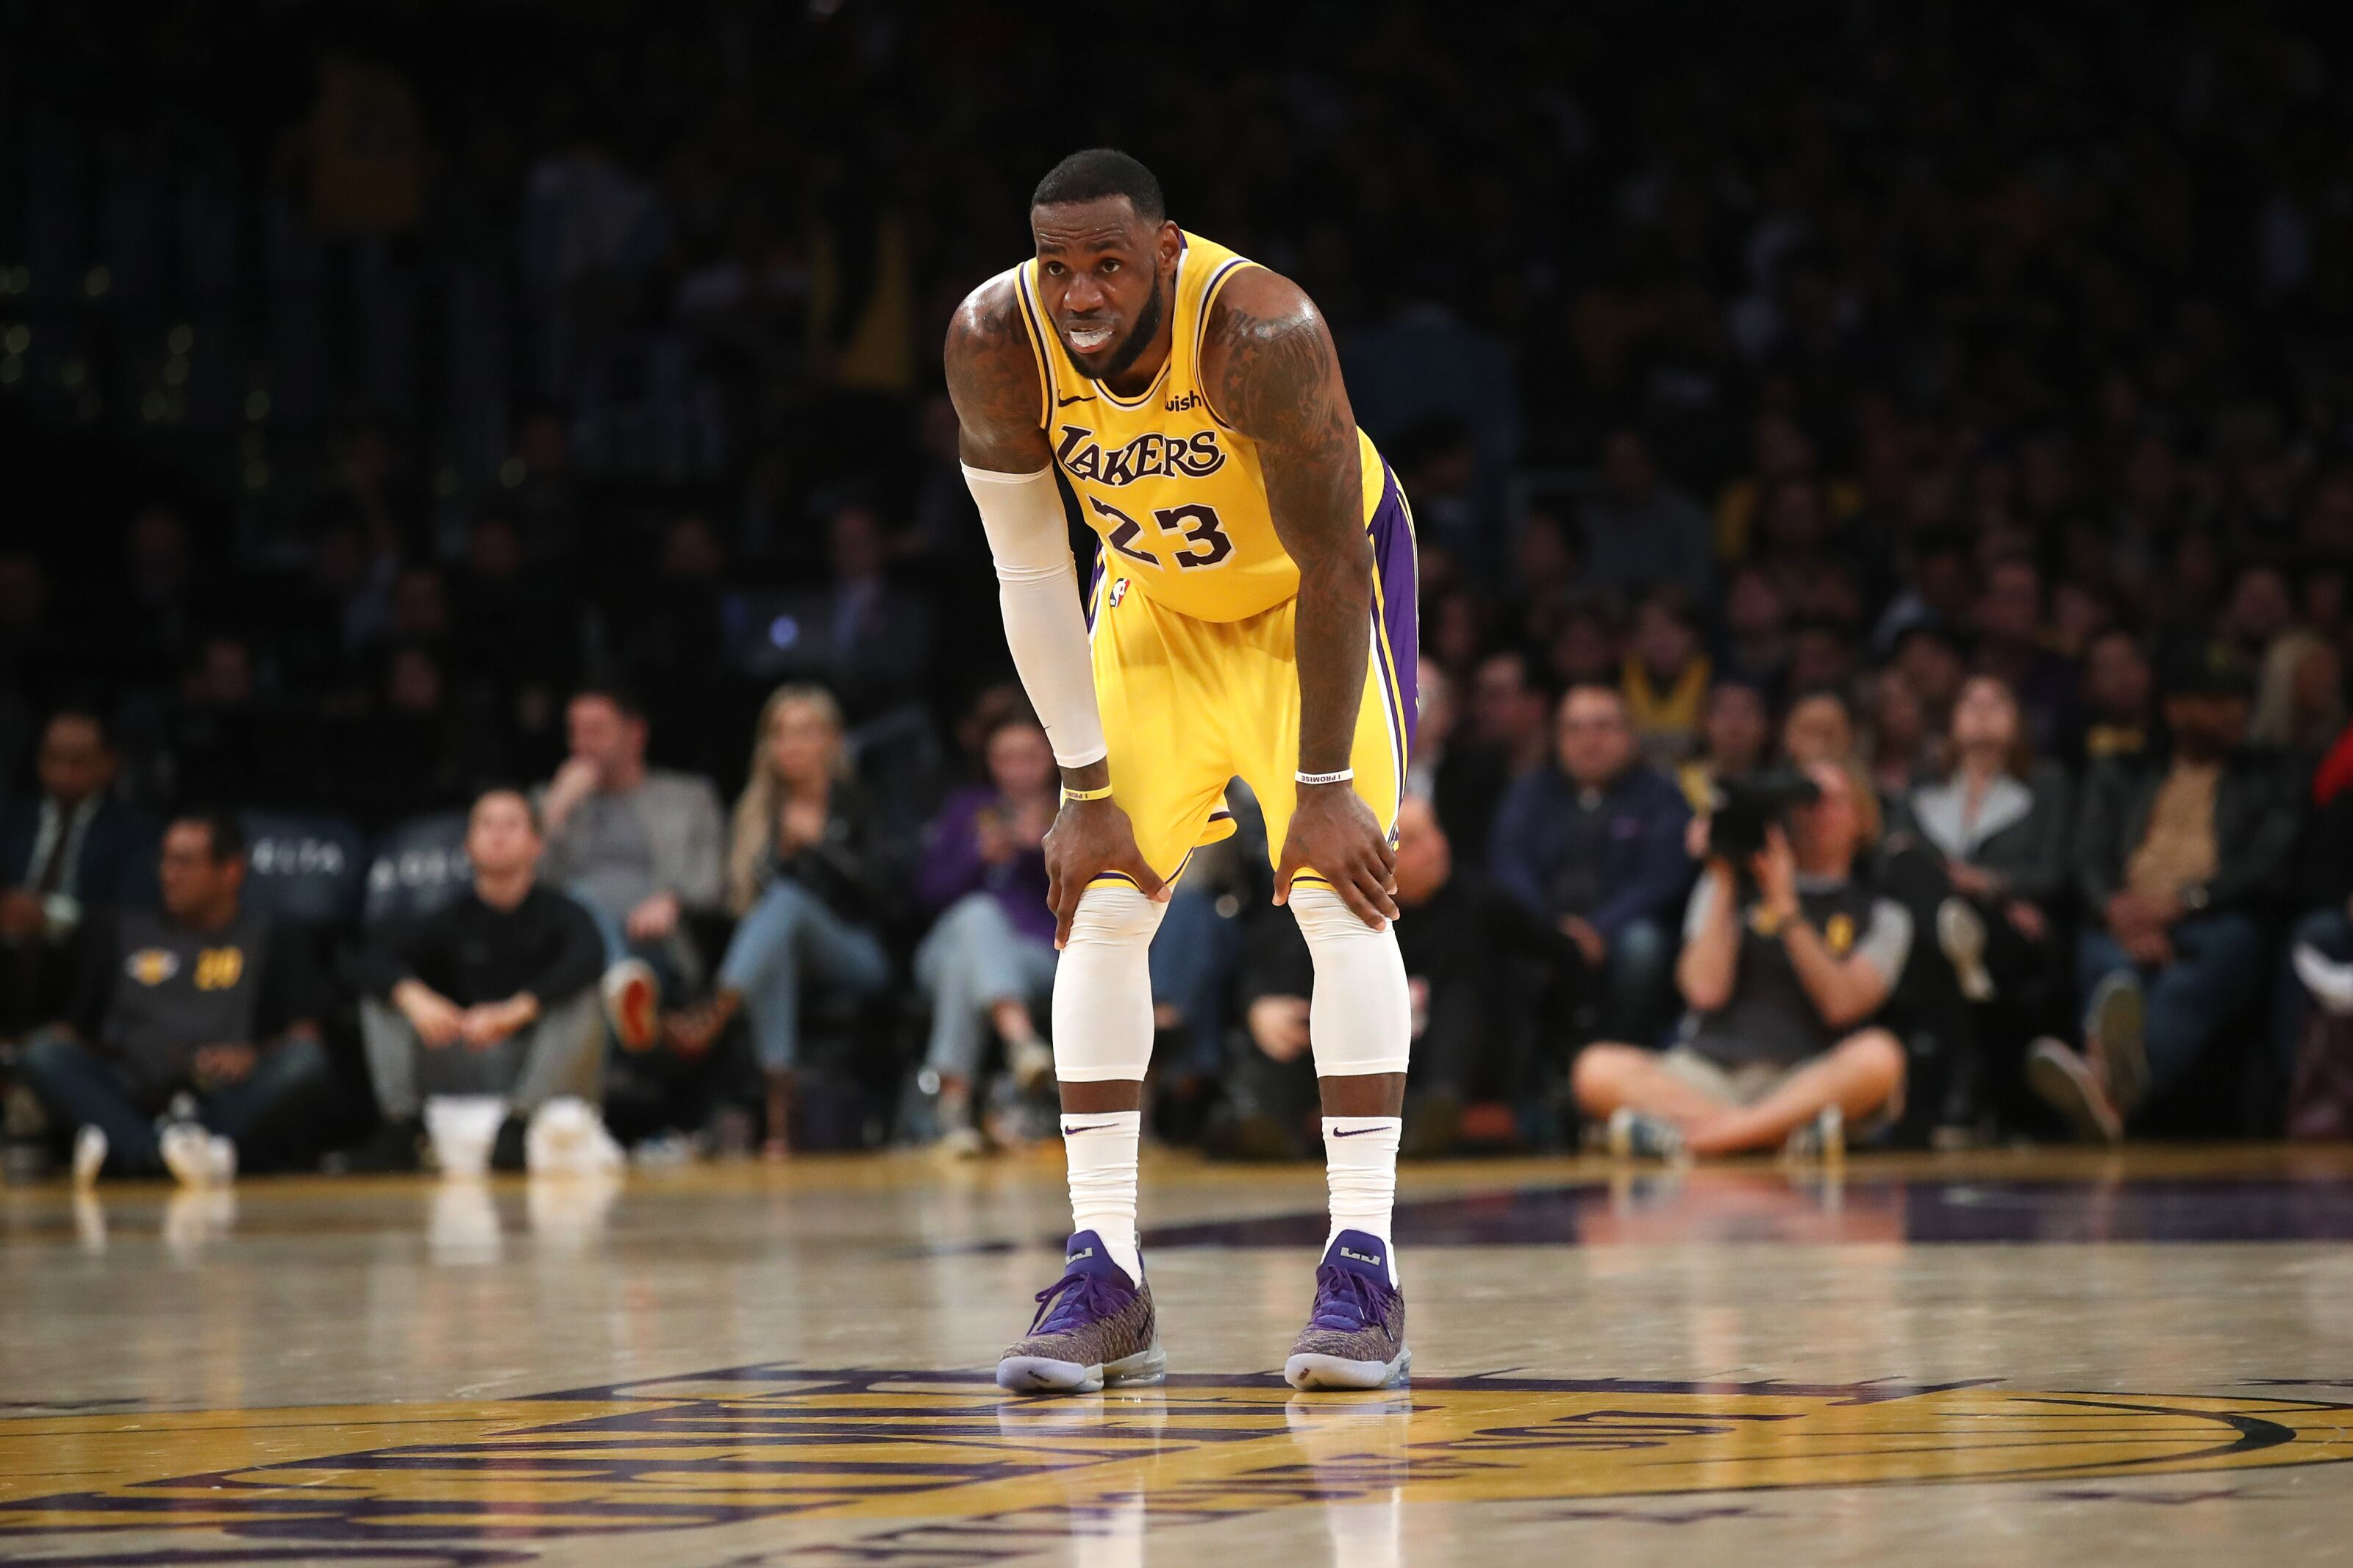 Los Angeles Lakers: Could LA miss the playoffs, or am I just a hater?